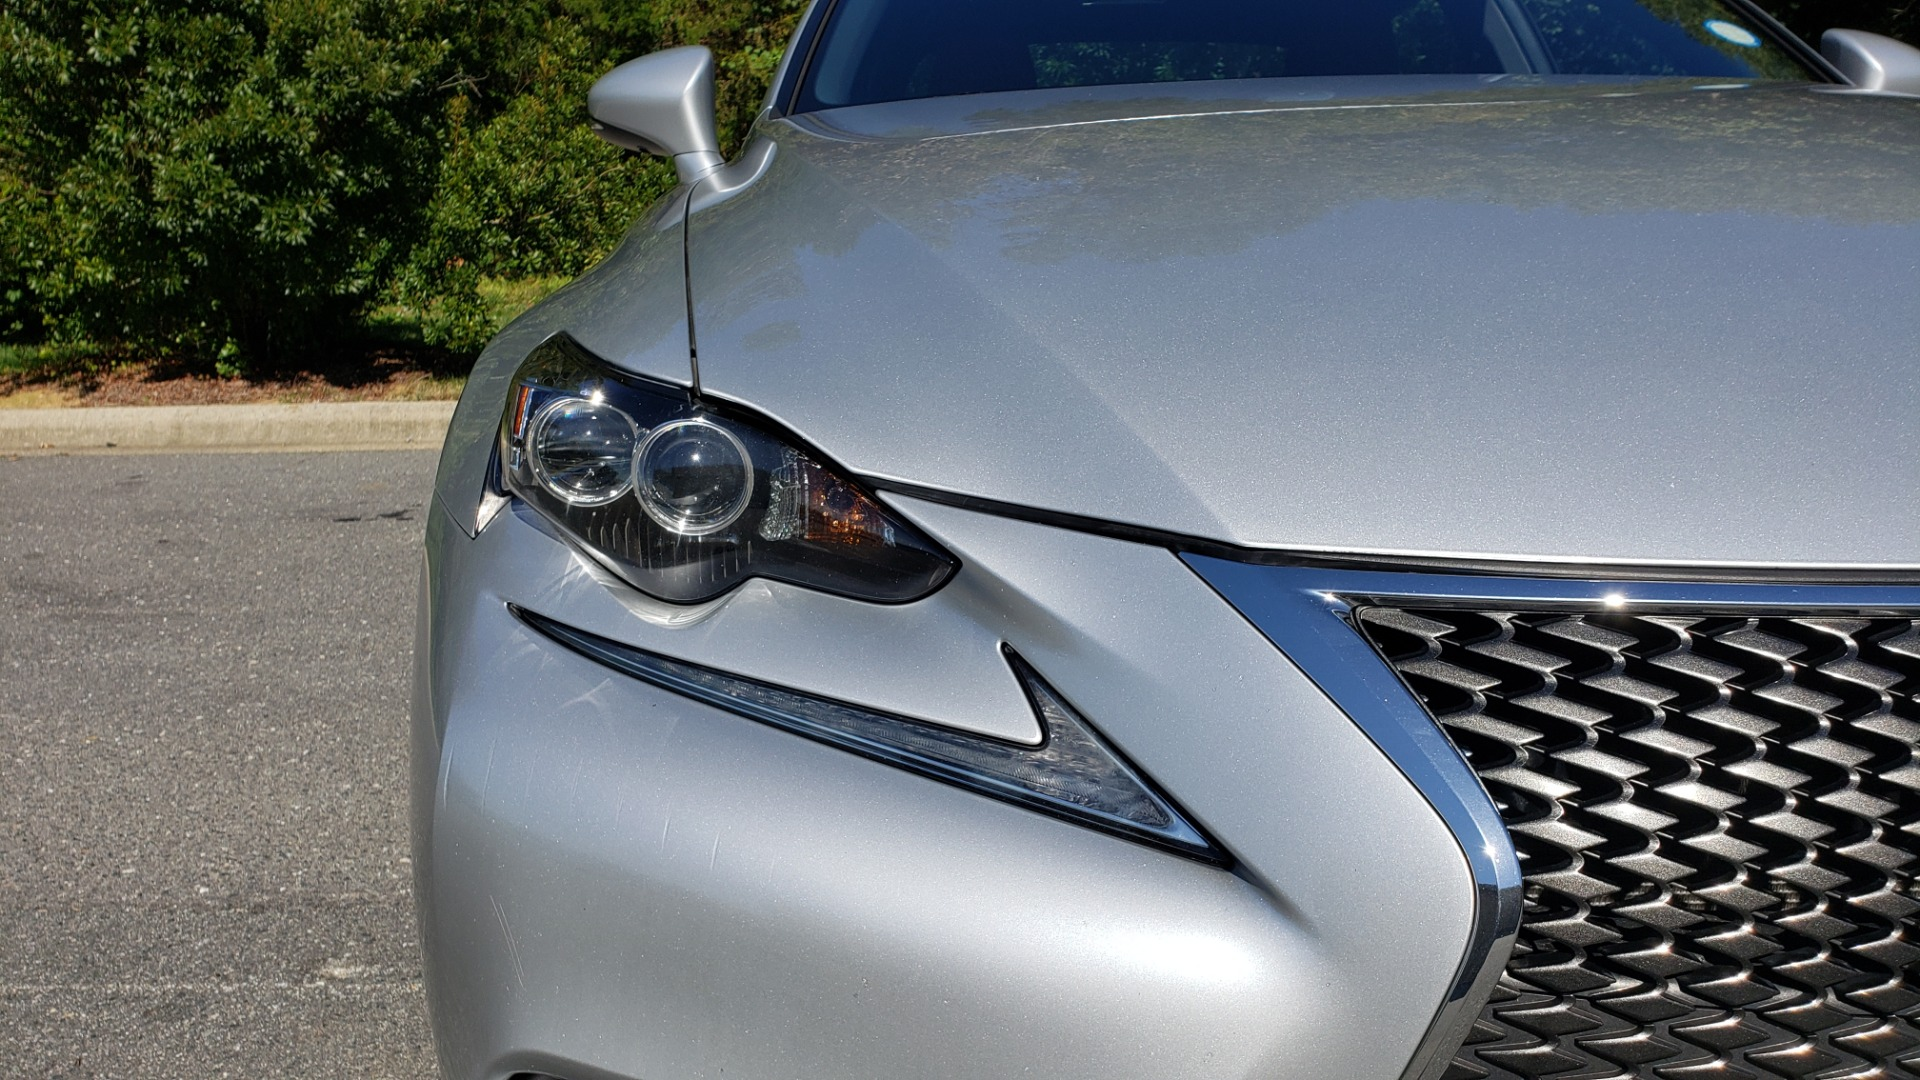 Used 2015 Lexus IS 350 F-SPORT / AWD / NAV / SUNROOF / BSM / REARVIEW for sale Sold at Formula Imports in Charlotte NC 28227 23